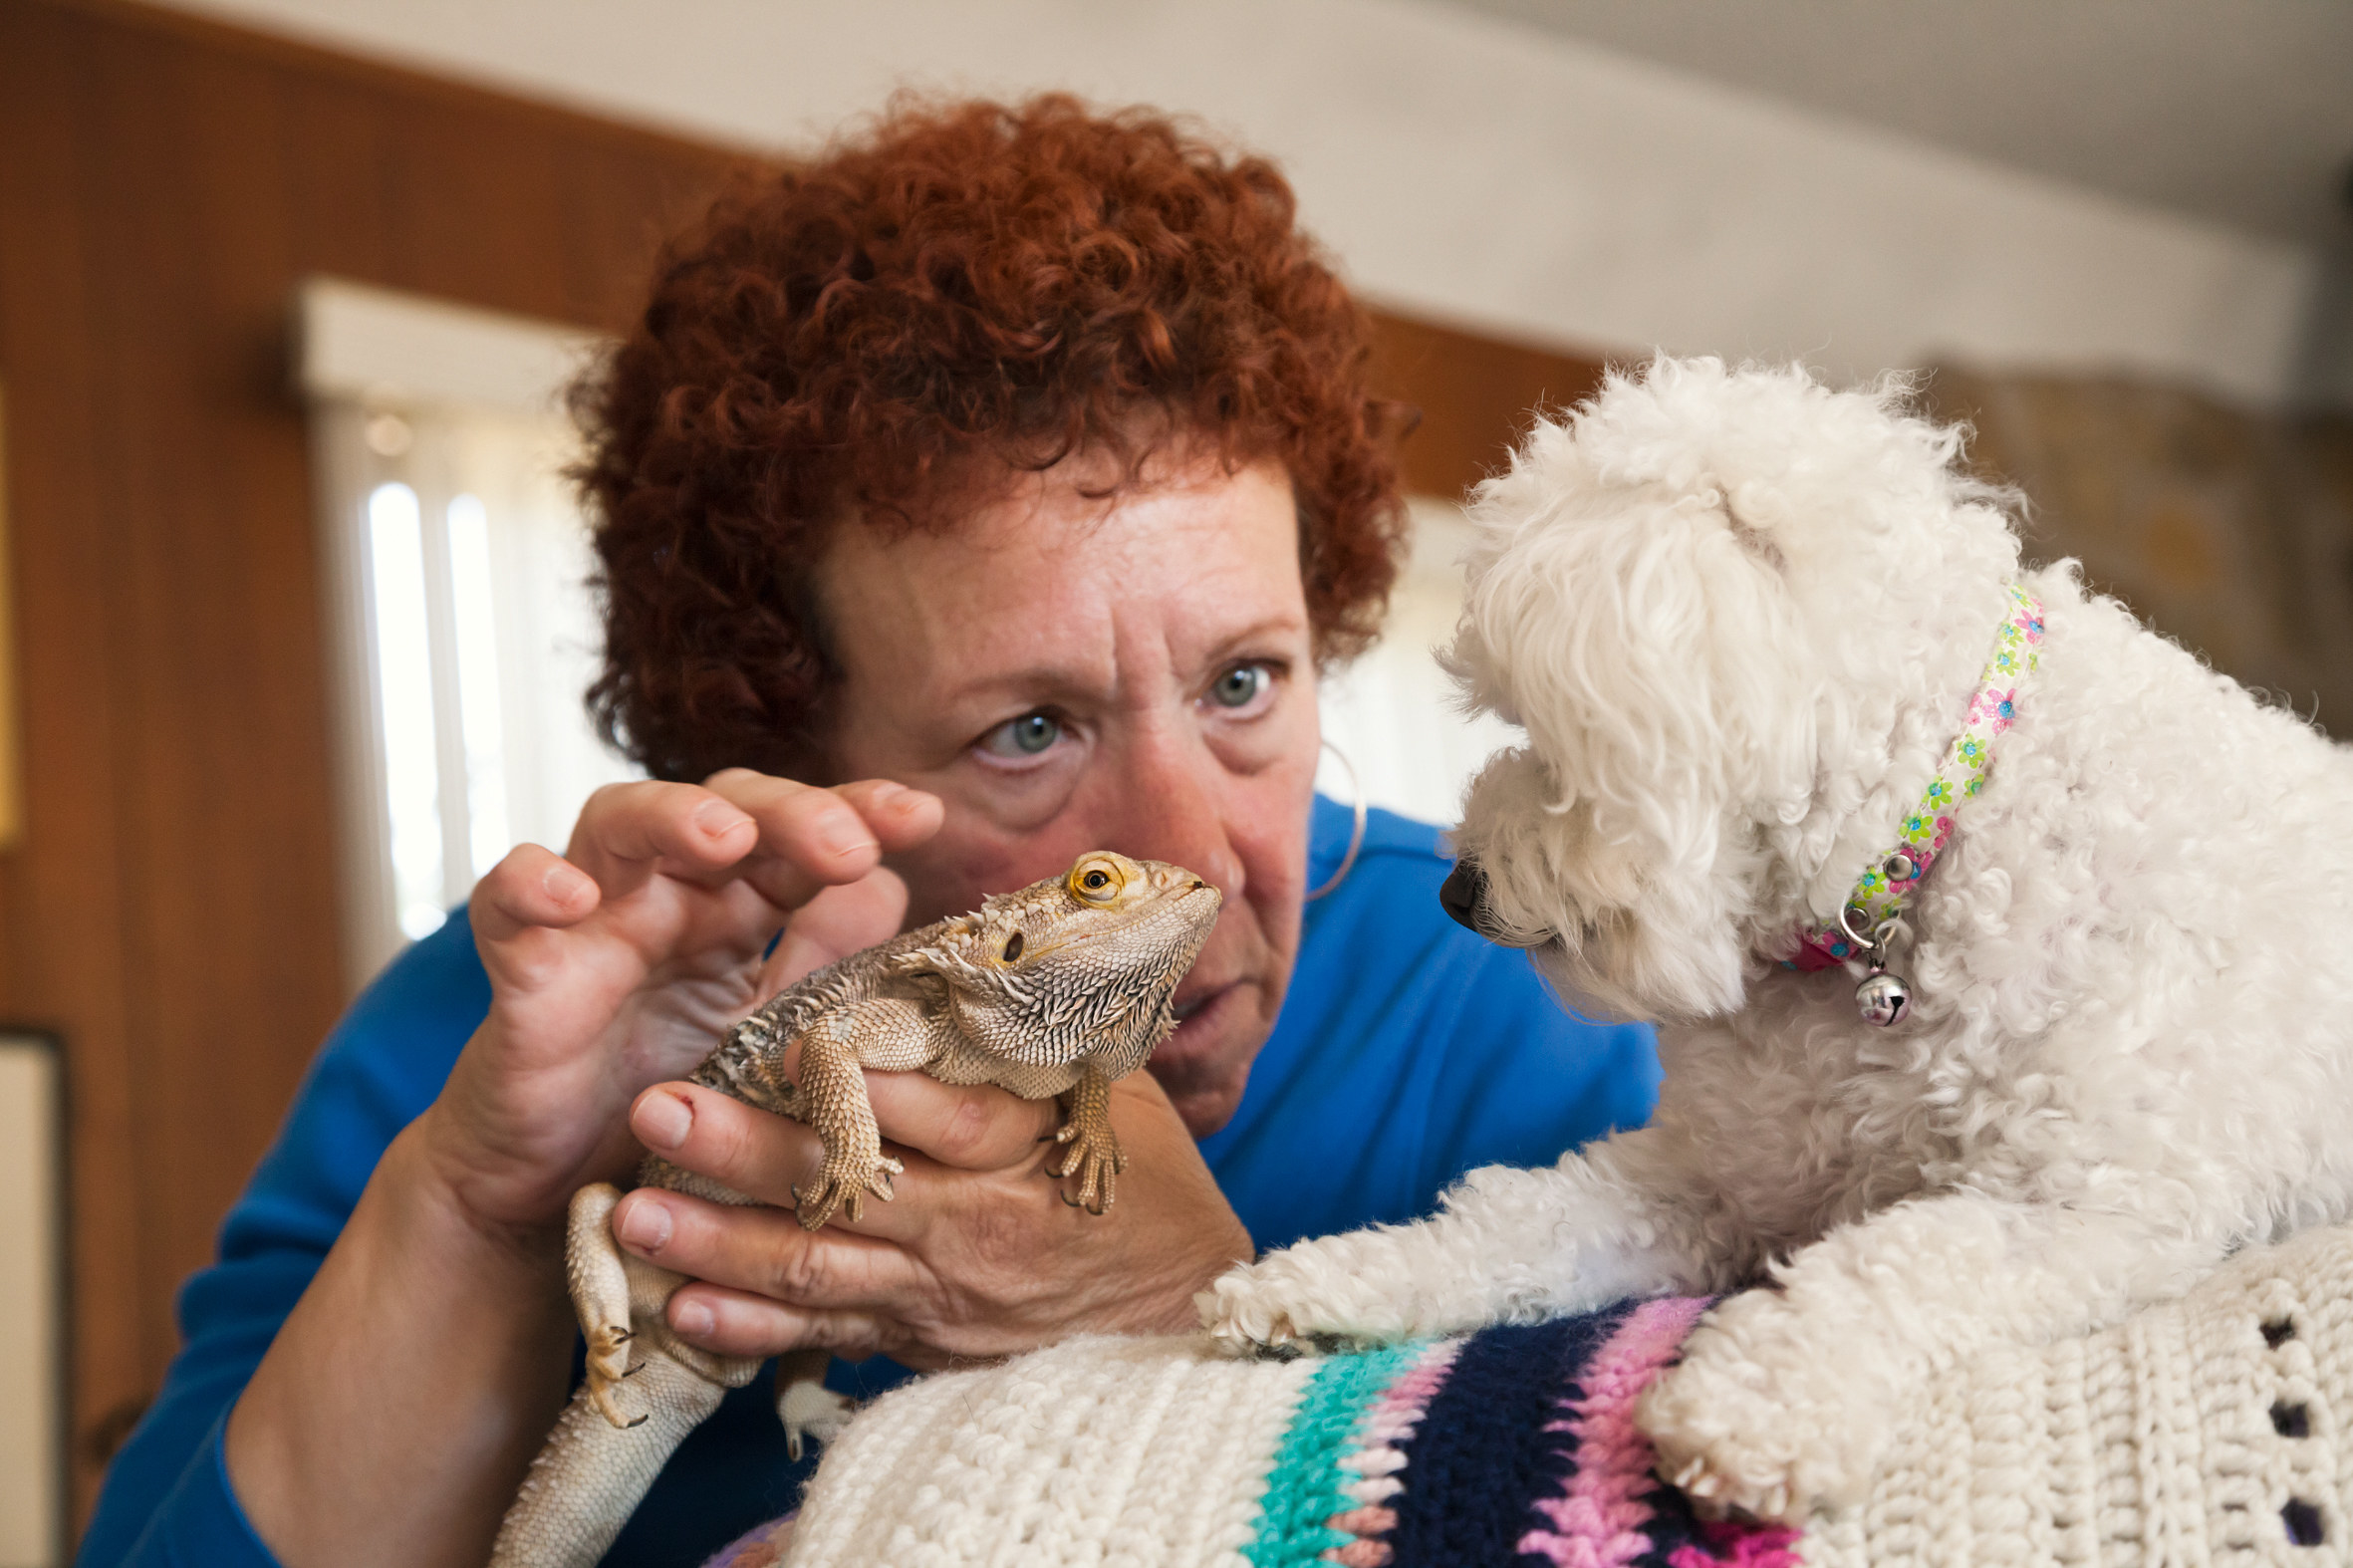 a woman pets an iguana and looks at a small white dog